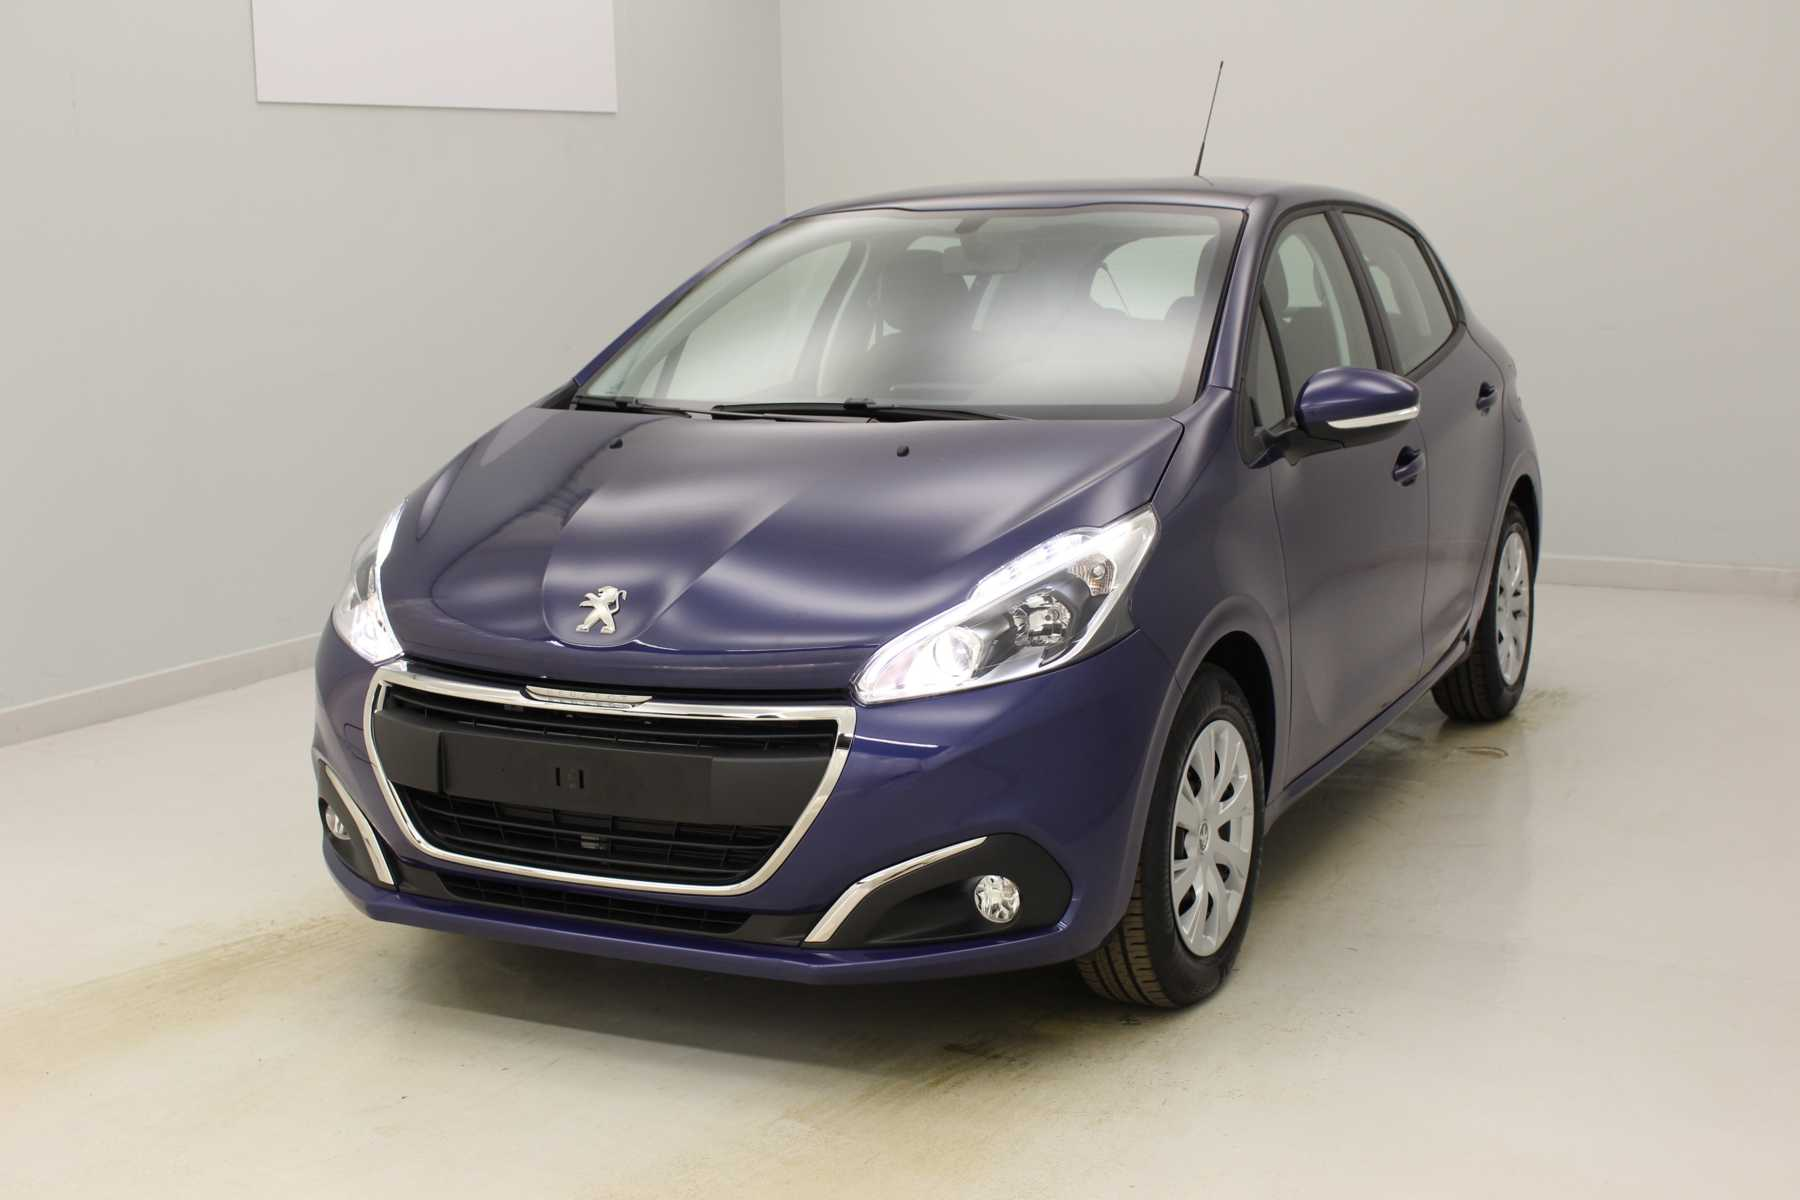 PEUGEOT 208 1.2 PureTech 82ch BVM5 Style Bleu Virtuel + Navigation 3D connectée + Roue de secours avec options